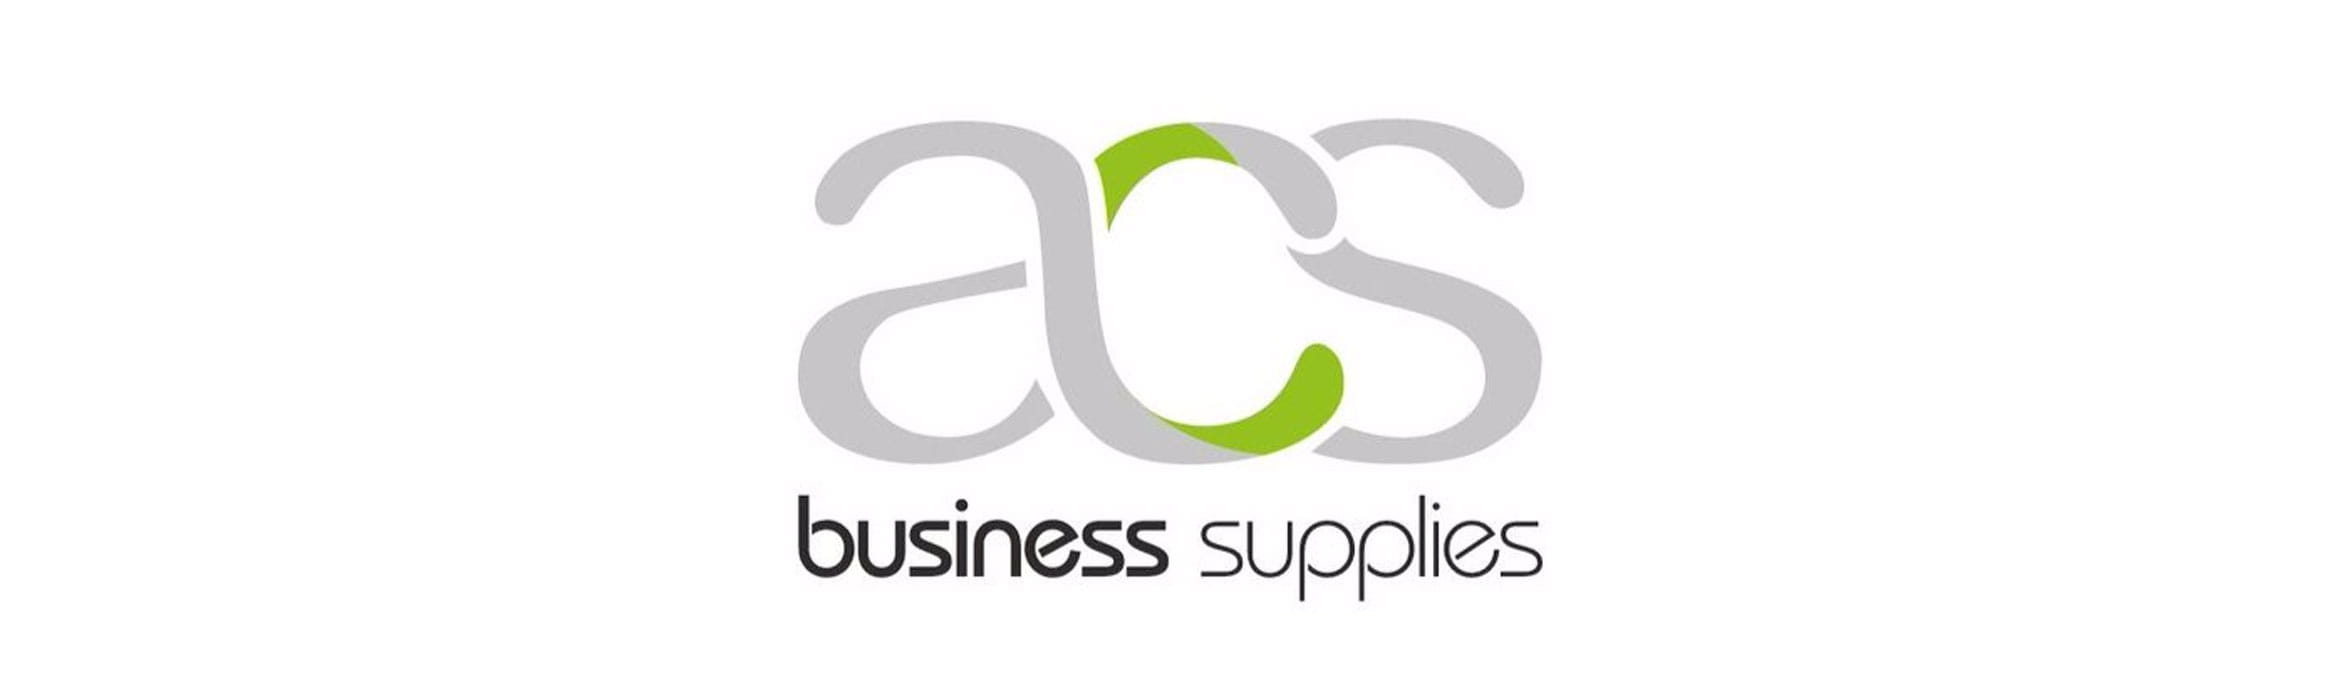 acs business supplies logo